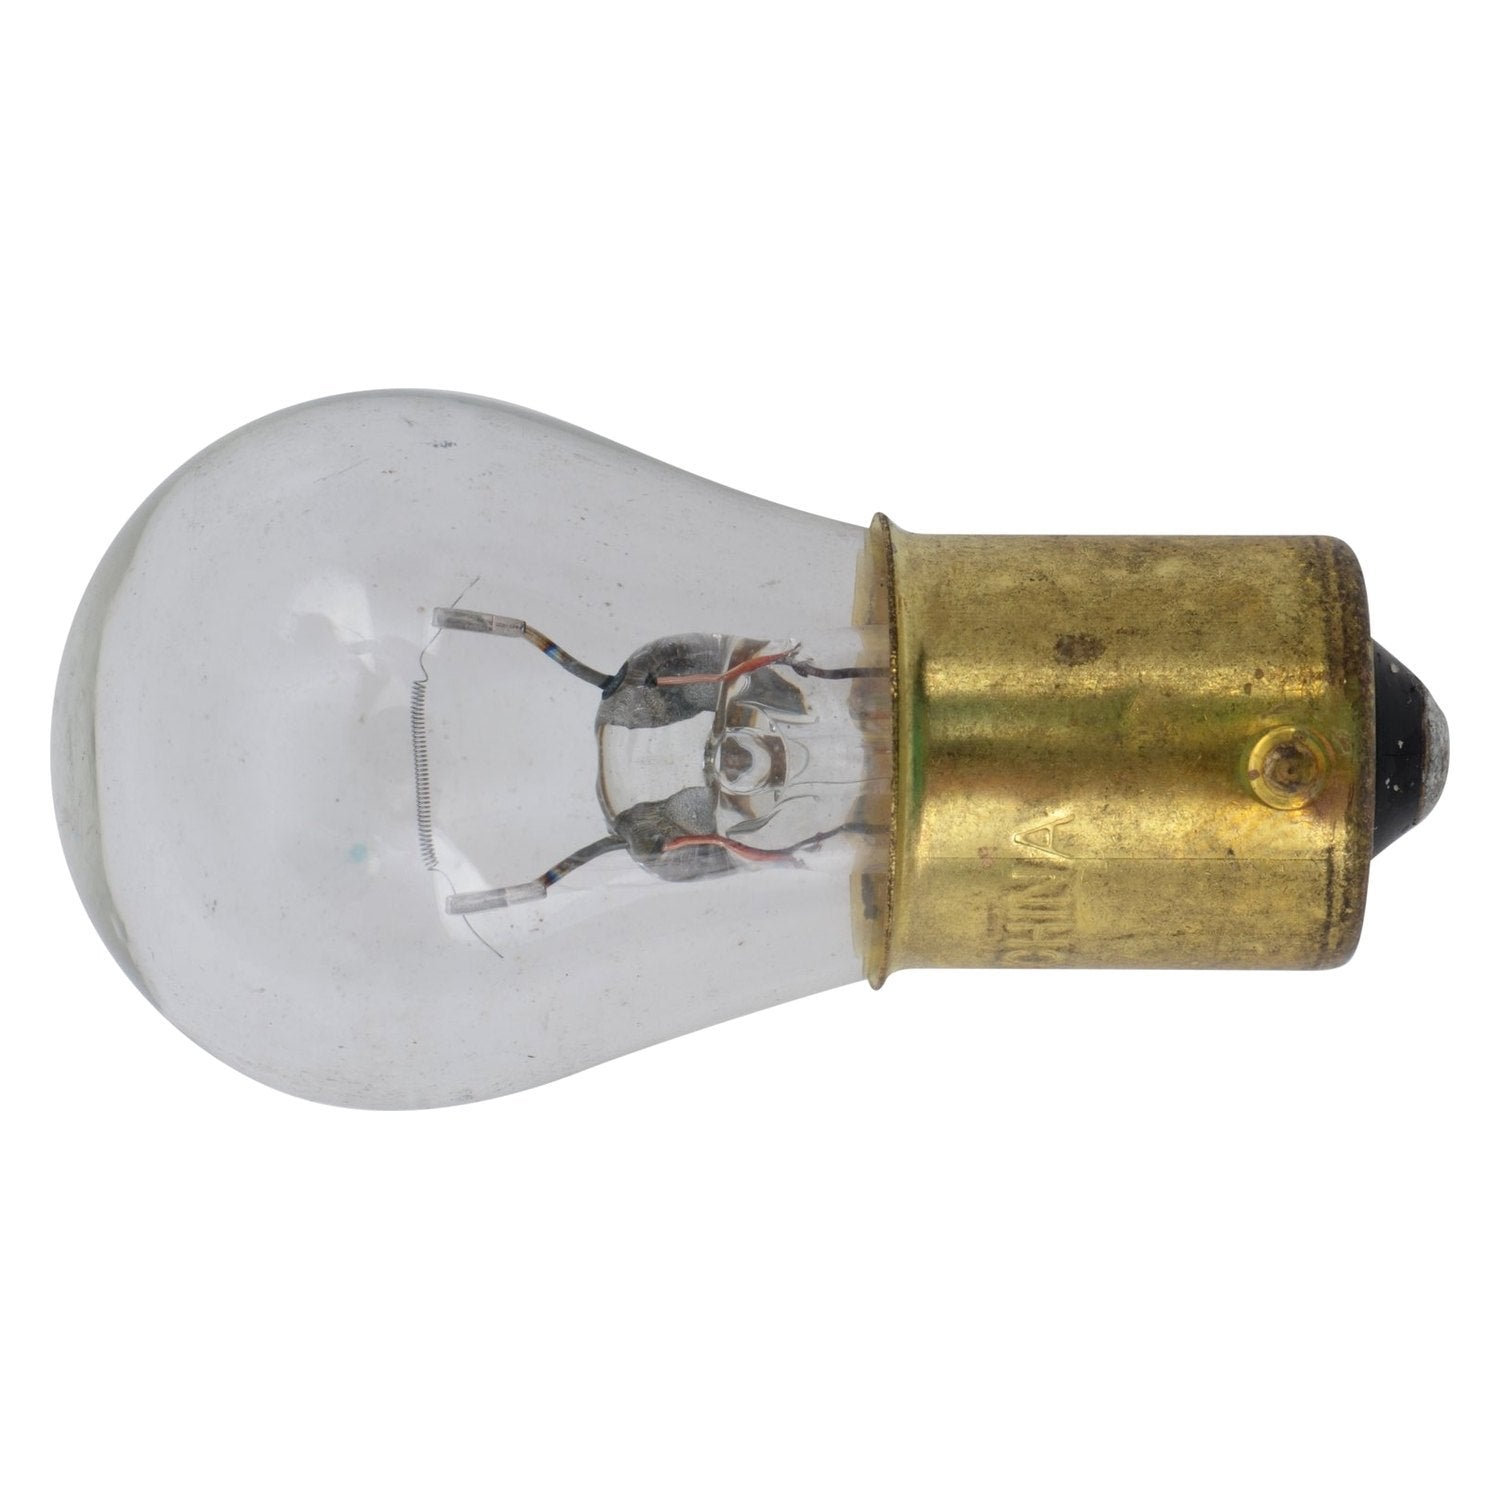 2 Pack - Philips 13 31W S8 12 8V BA15s Aircraft Low Voltage Bulb